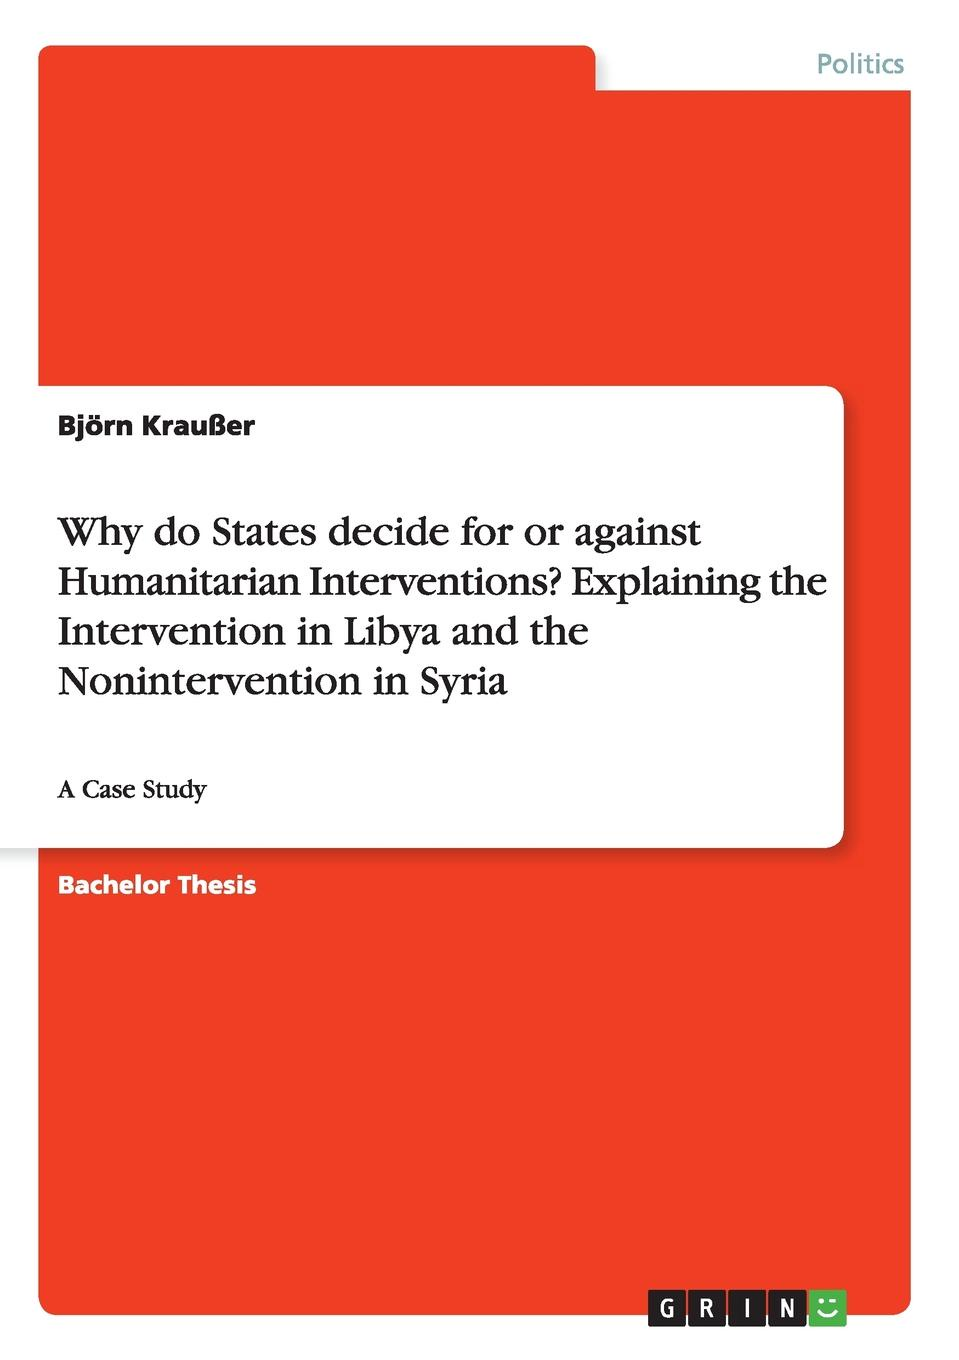 лучшая цена Björn Kraußer Why do States decide for or against Humanitarian Interventions. Explaining the Intervention in Libya and the Nonintervention in Syria